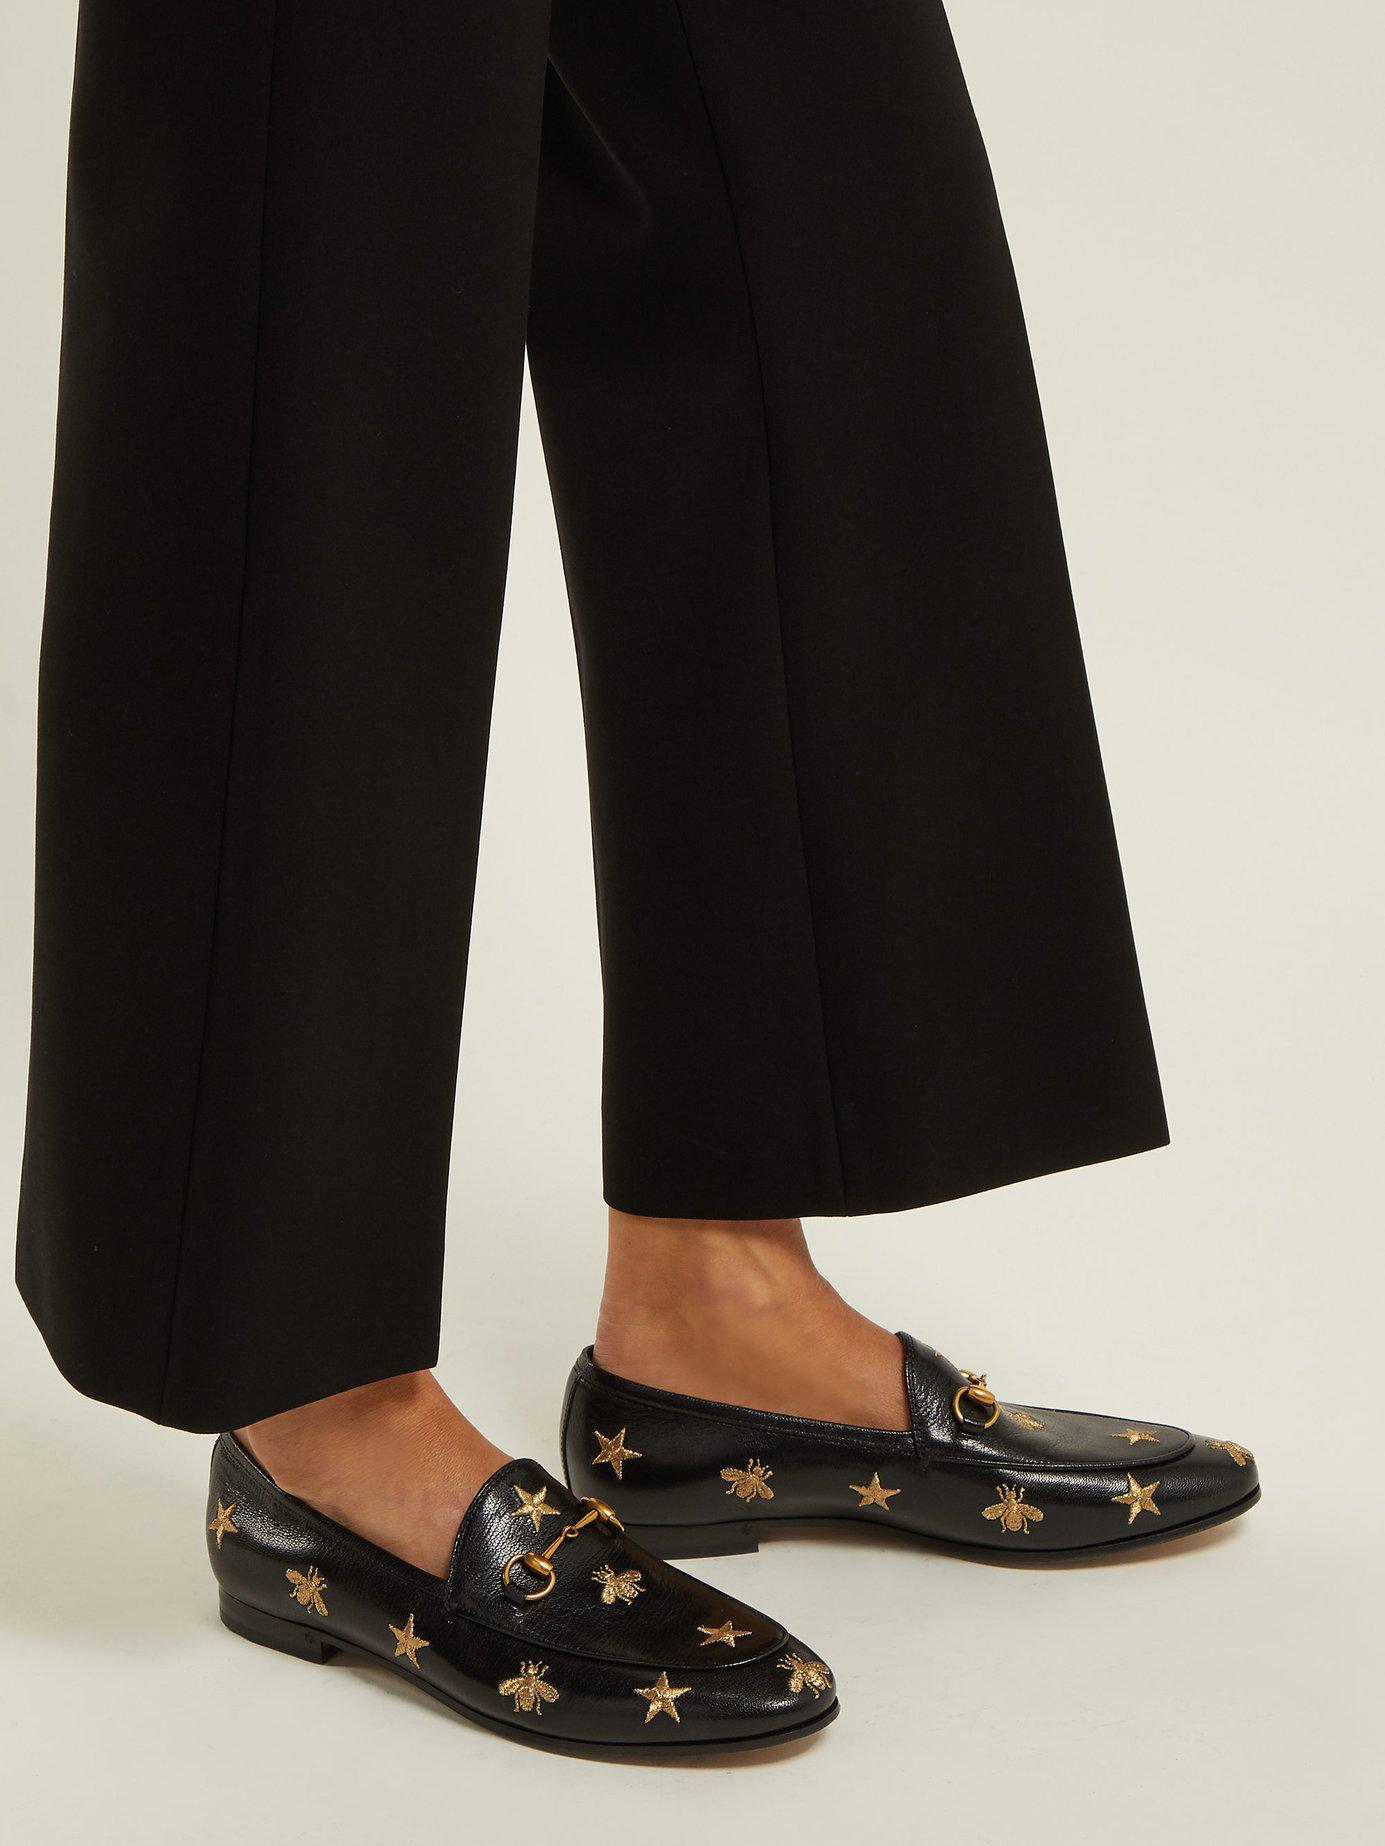 e2adb95dbf2 Gucci - Black Jordaan Embroidered Leather Loafers - Lyst. View fullscreen